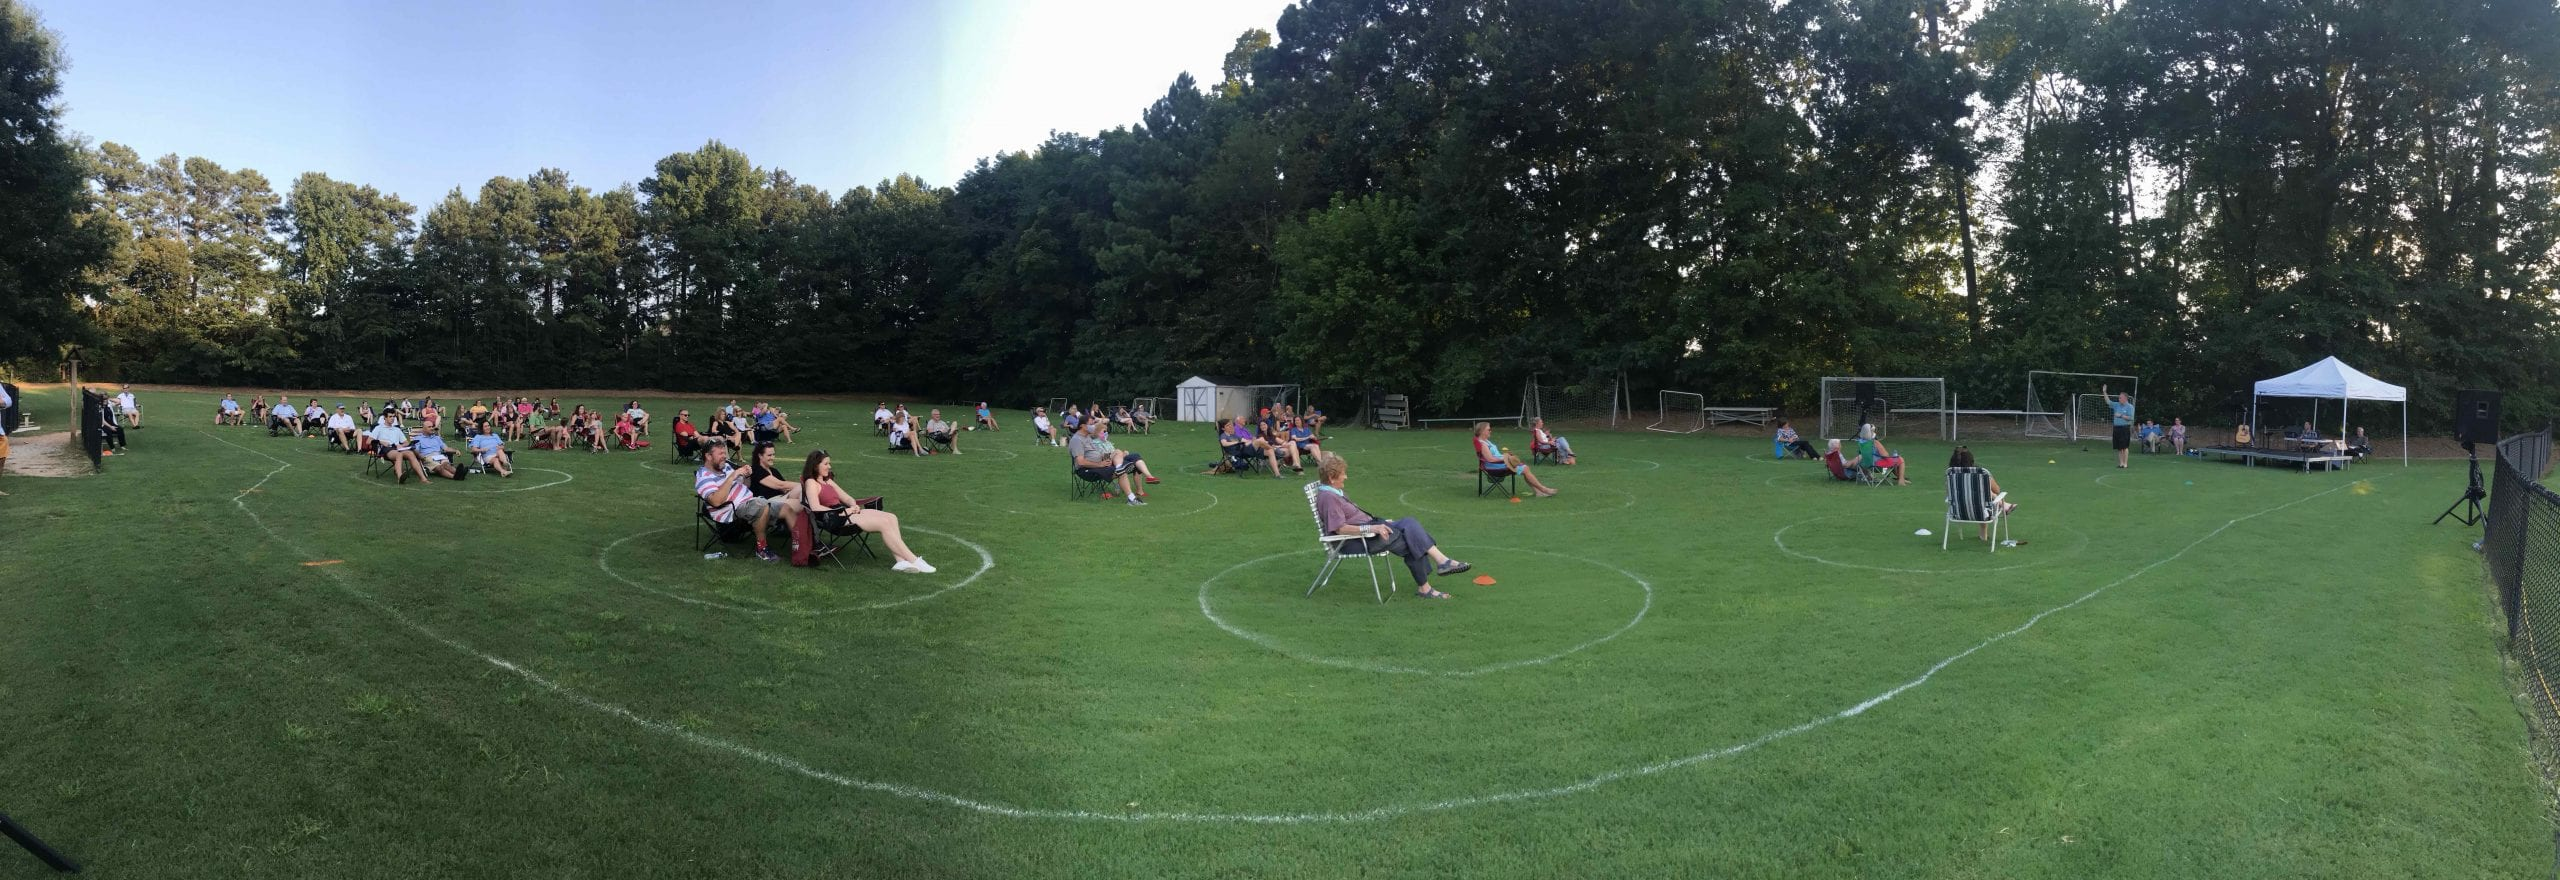 Outdoor worship on DUMC ball field